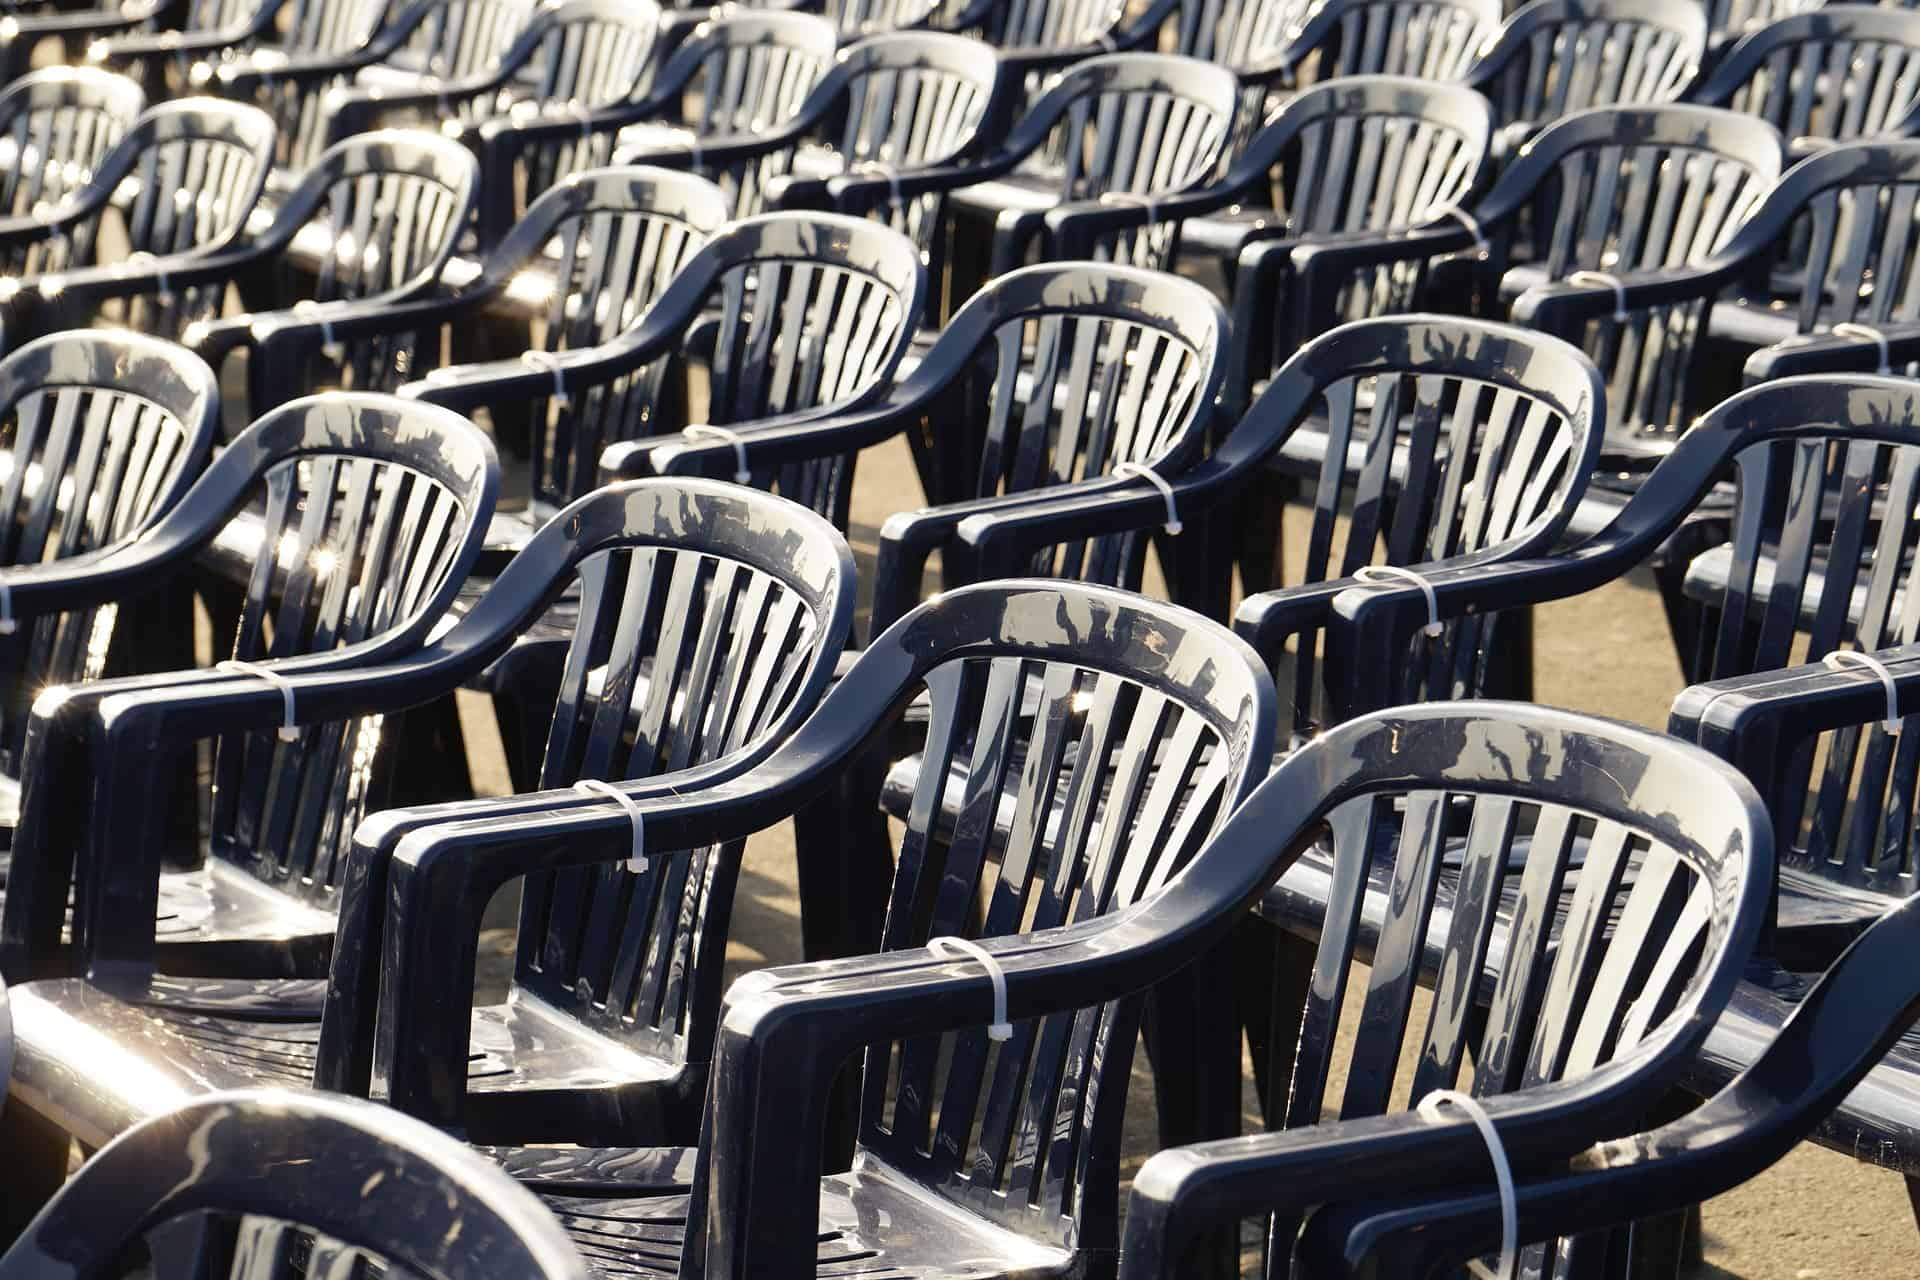 Chairs 2520146 1920